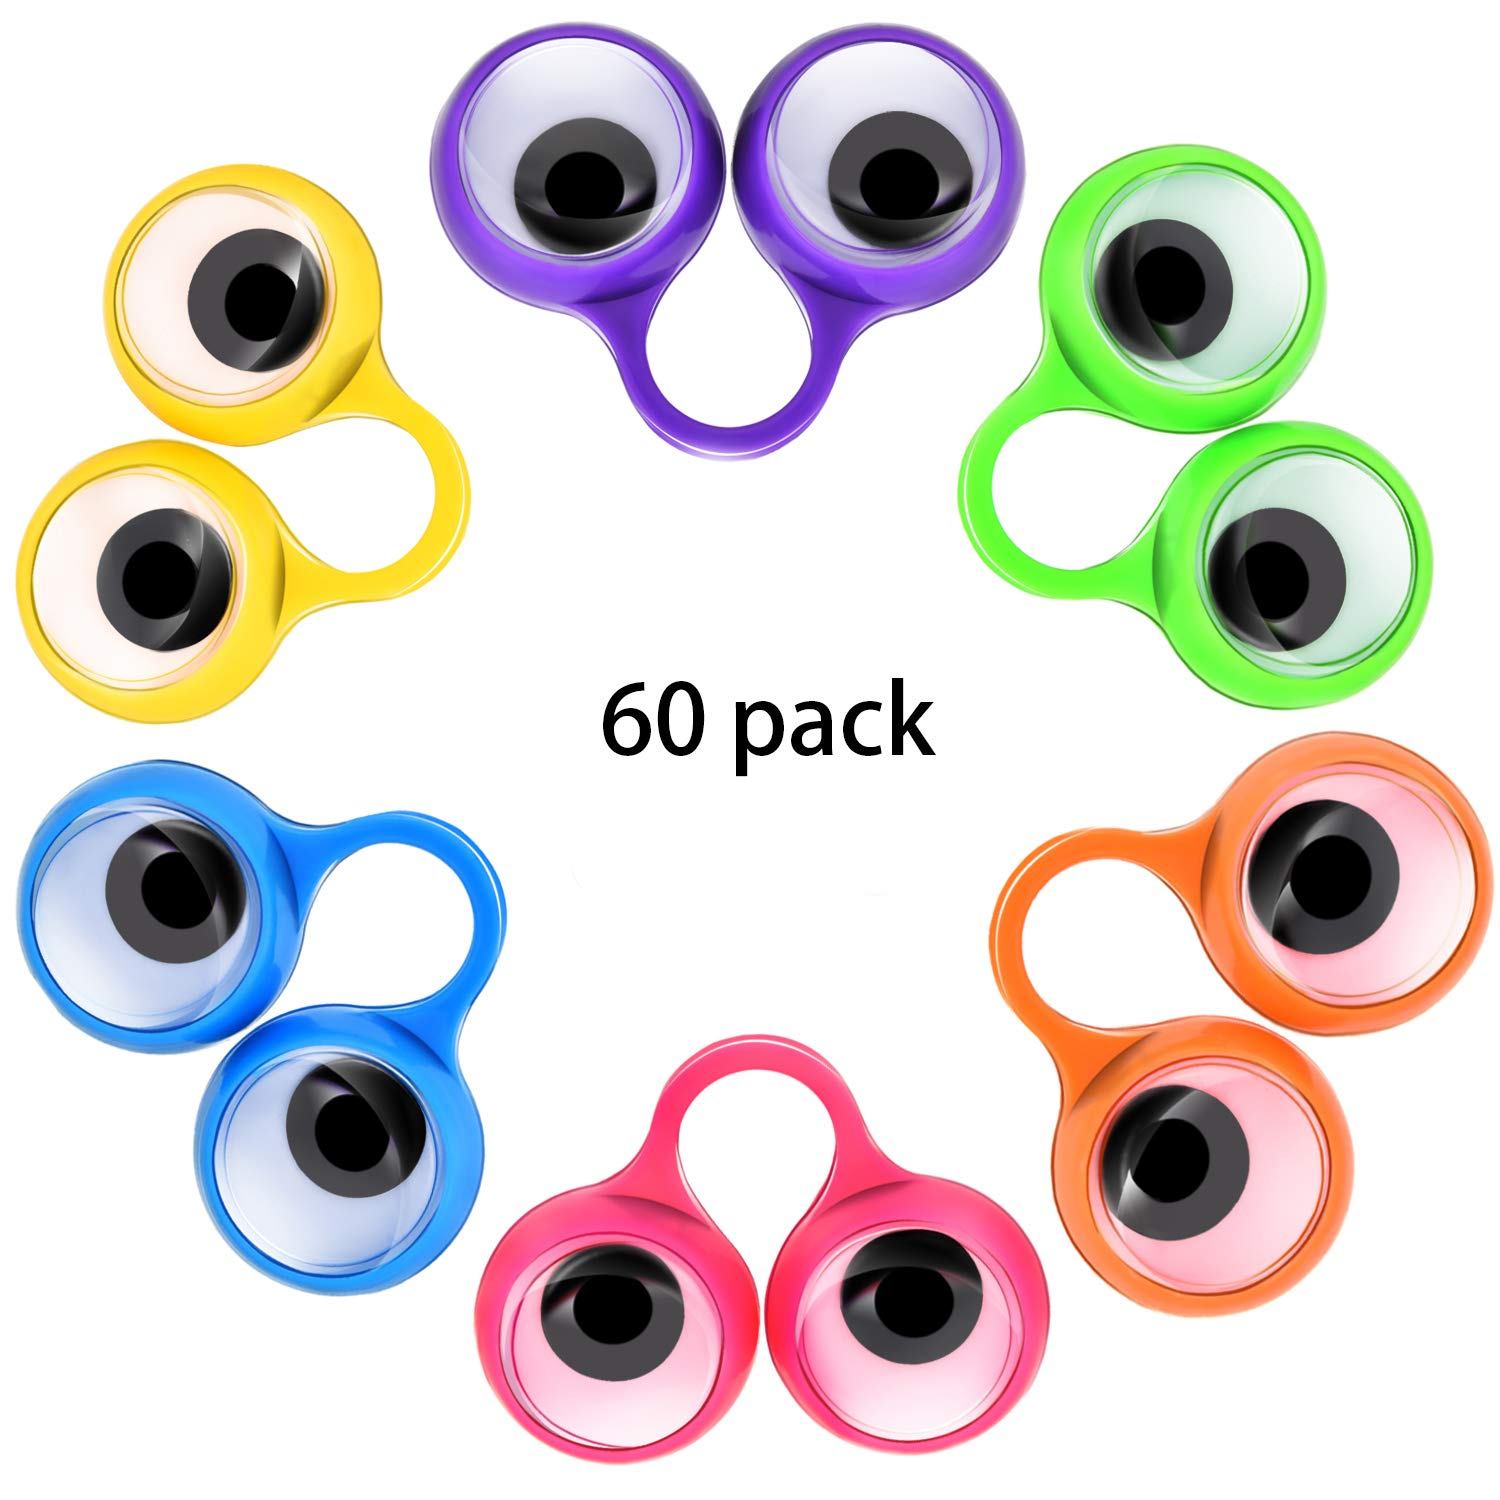 Scafiv 60 Pieces Eye Finger Puppets Googly Eyes Rings Eyeball Ring Finger Puppet Eyes Party Favor Toys for Kids, 6 Colors